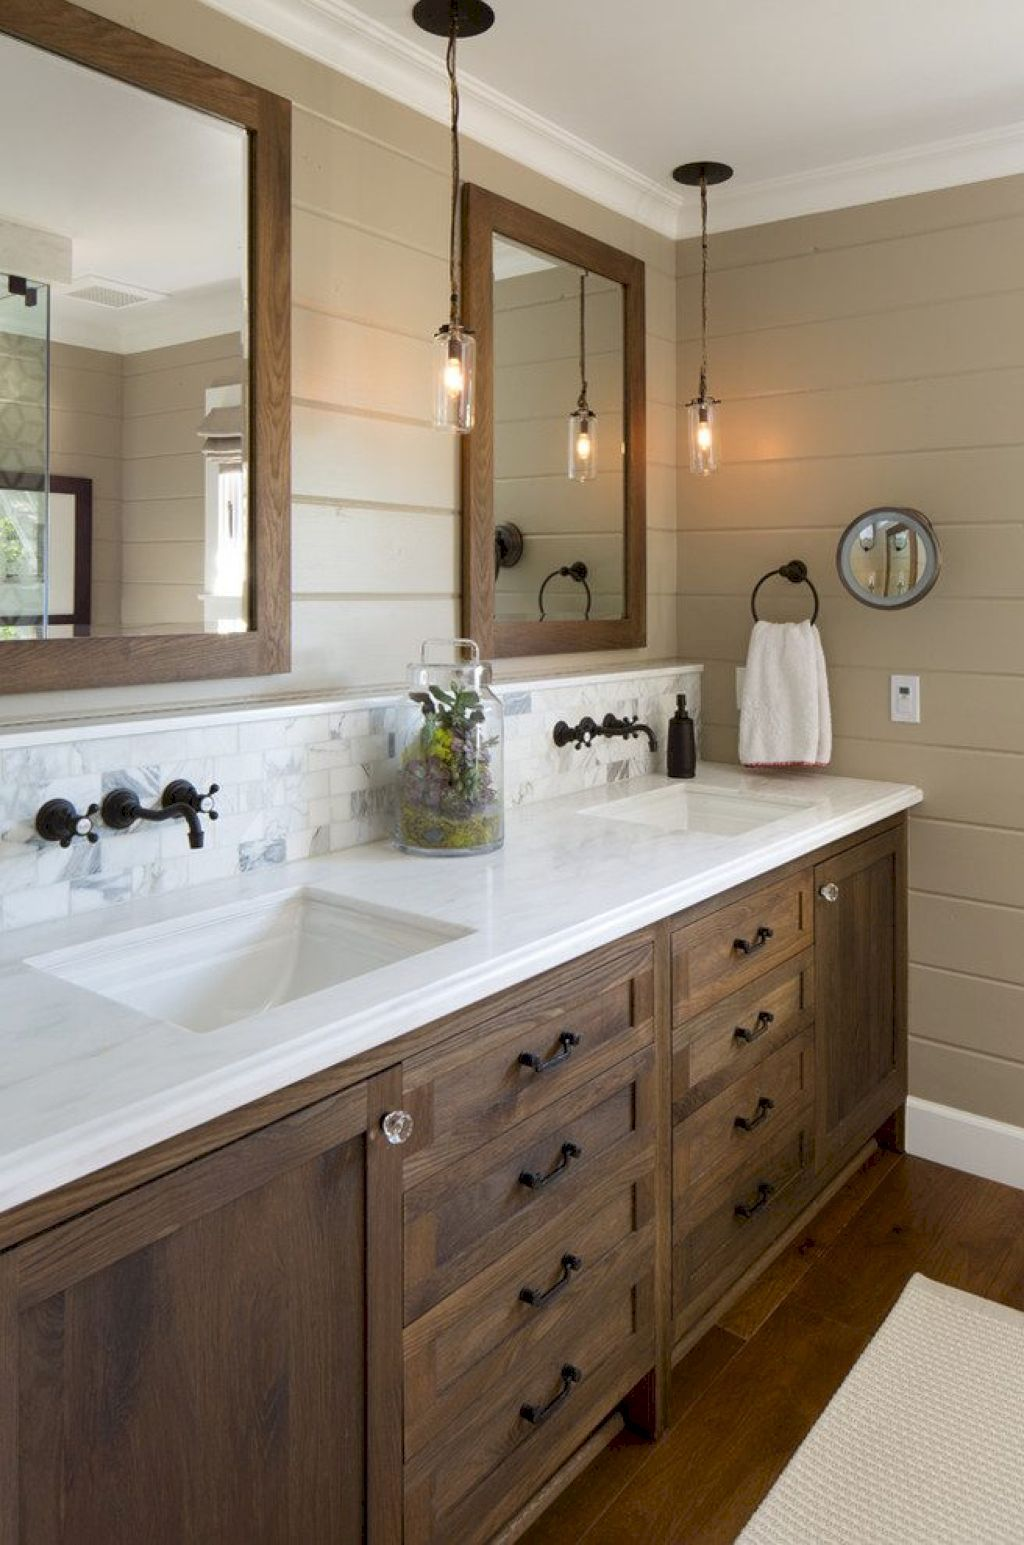 Best Master Bathroom Designs Beauteous 50 Best Master Bathroom Remodel Ideas  Master Bathrooms Bath And Review